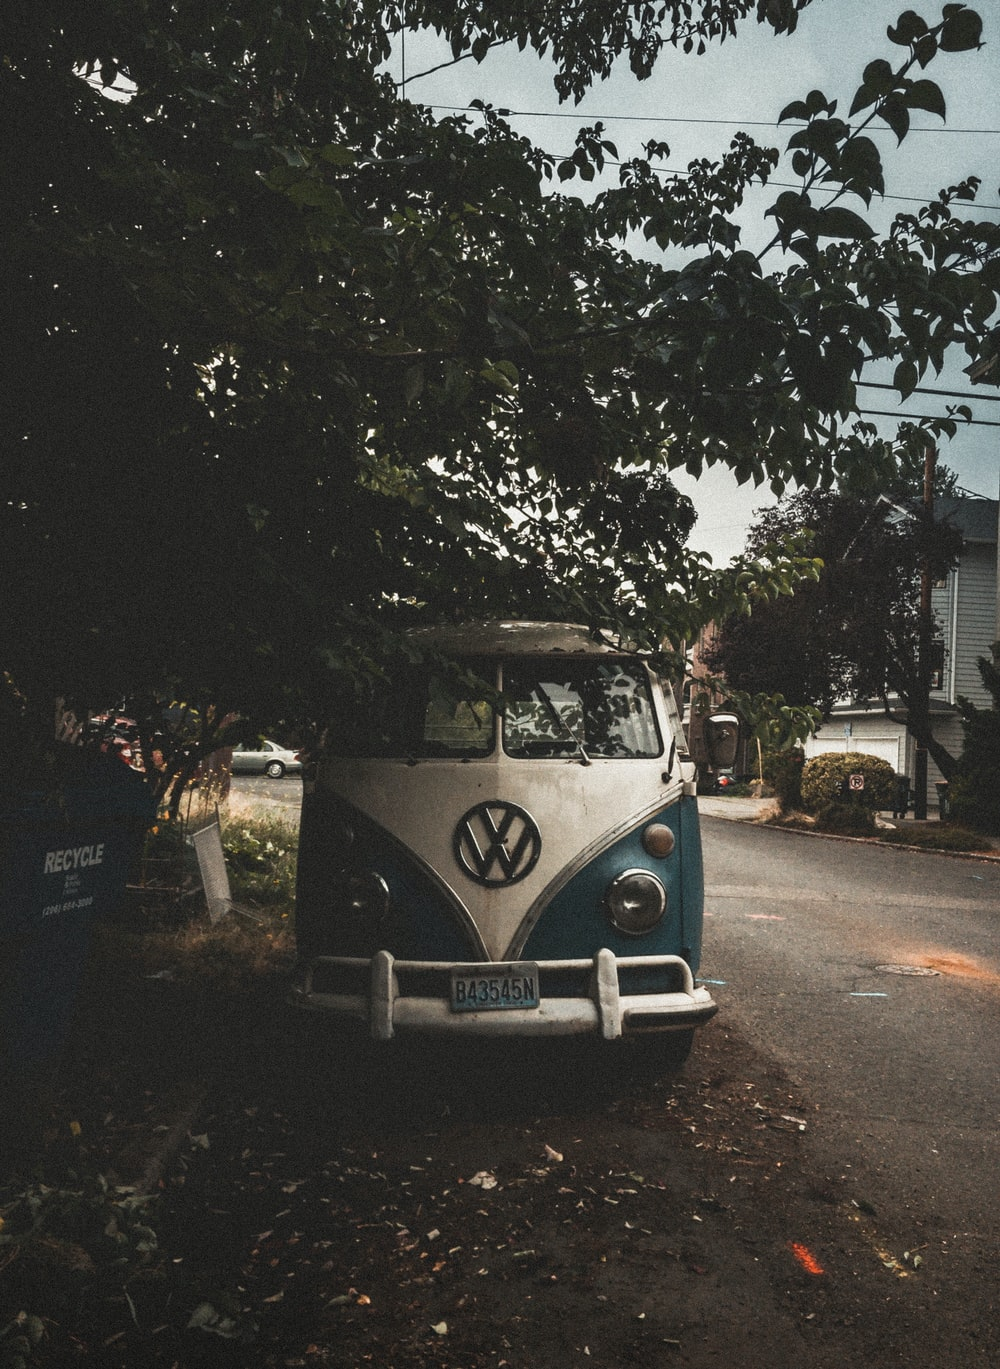 white and blue Volkswagen van park beside road